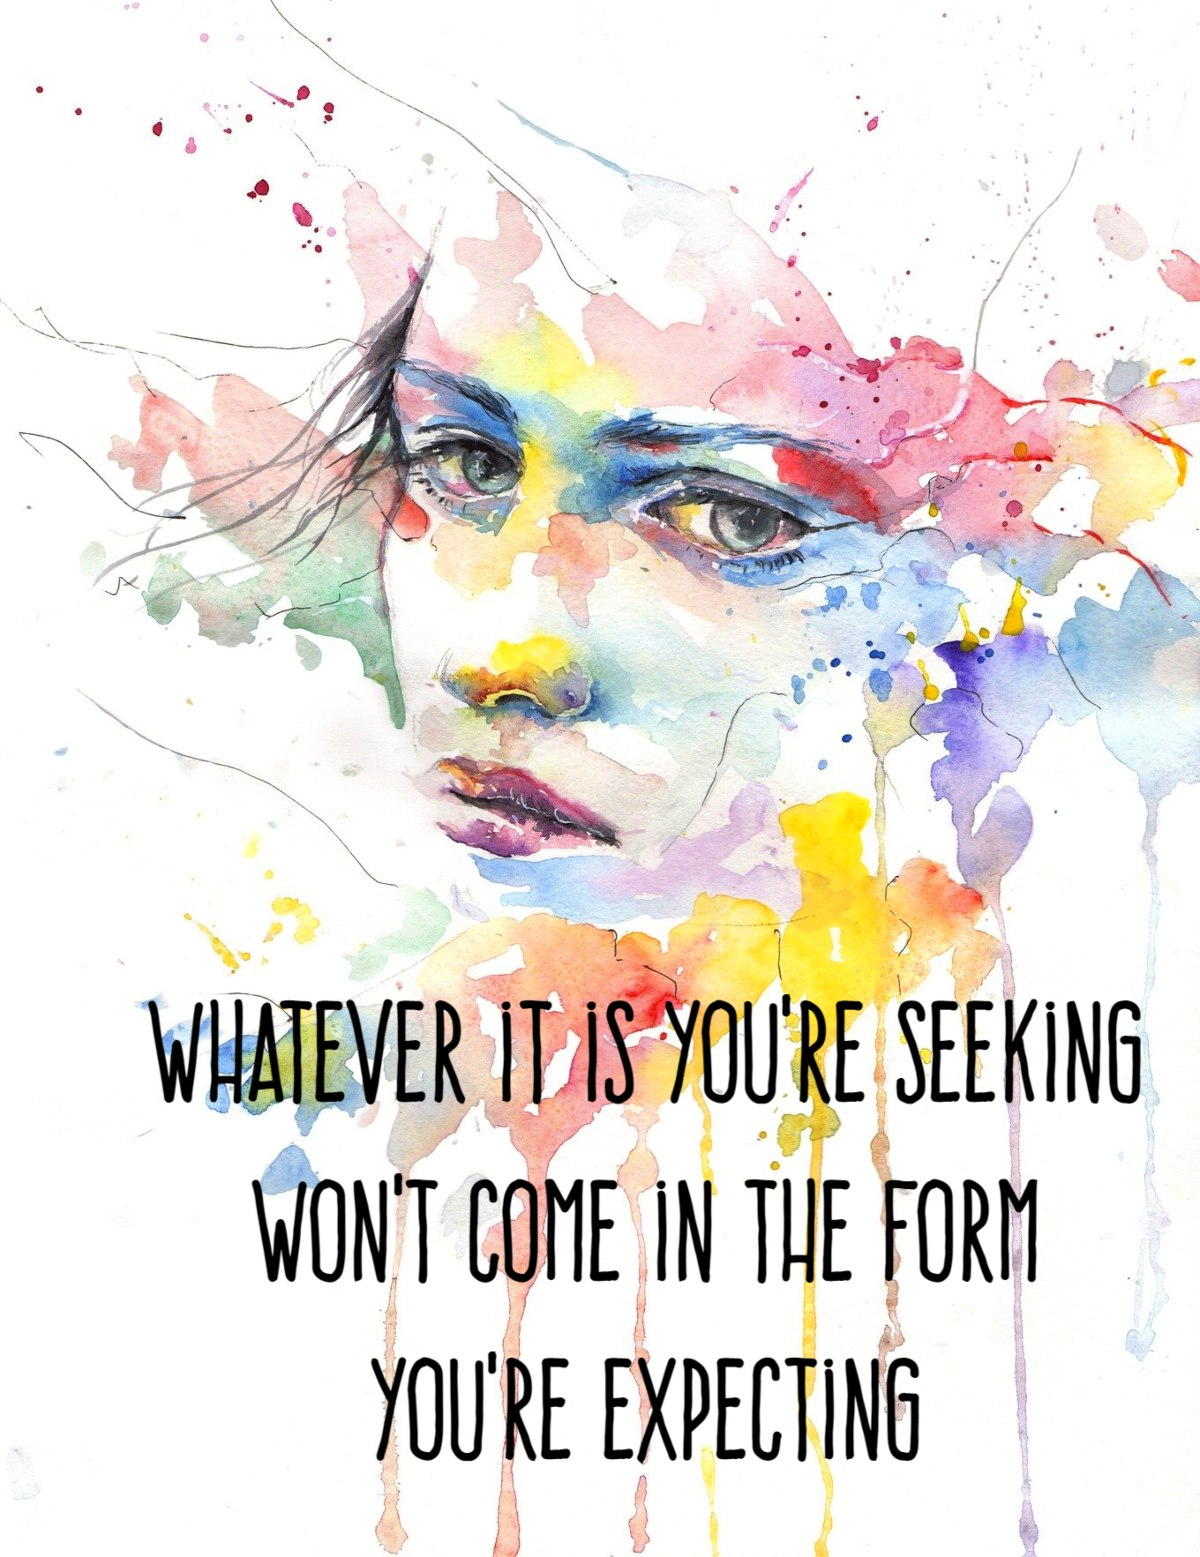 bekitschig blog quote Haruki Murakami Whatever it is you are seeking wont come in the form youre expecting